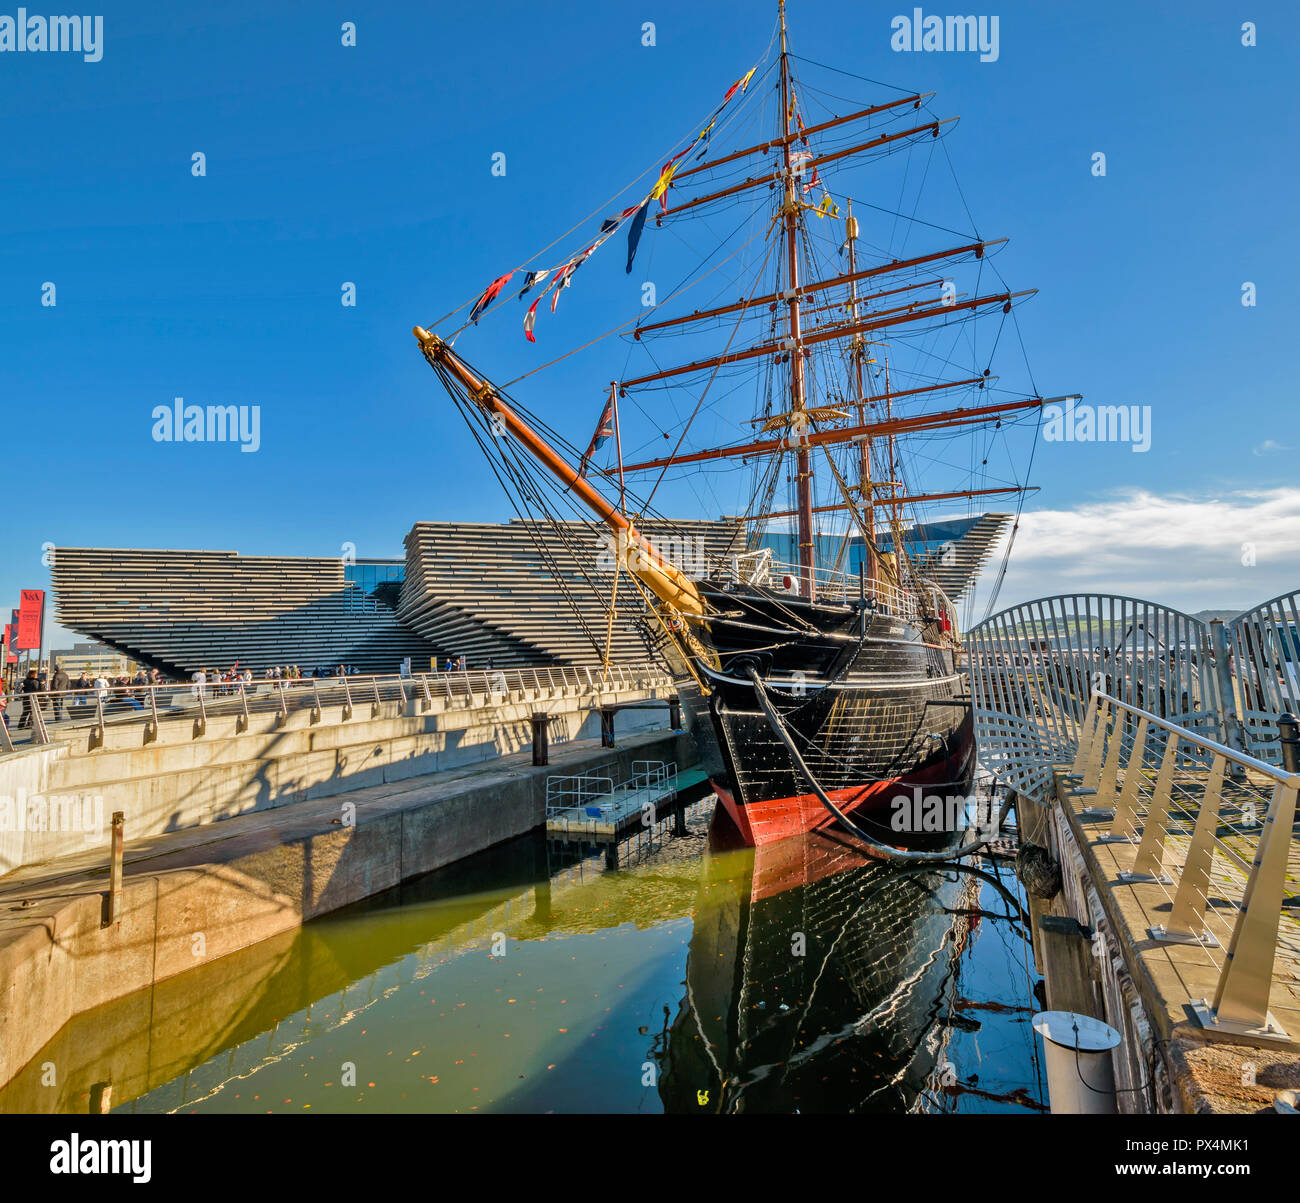 V & A MUSEUM OF DESIGN DUNDEE SCOTLAND THE BUILDING AND RSS DISCOVERY IN DOCK - Stock Image